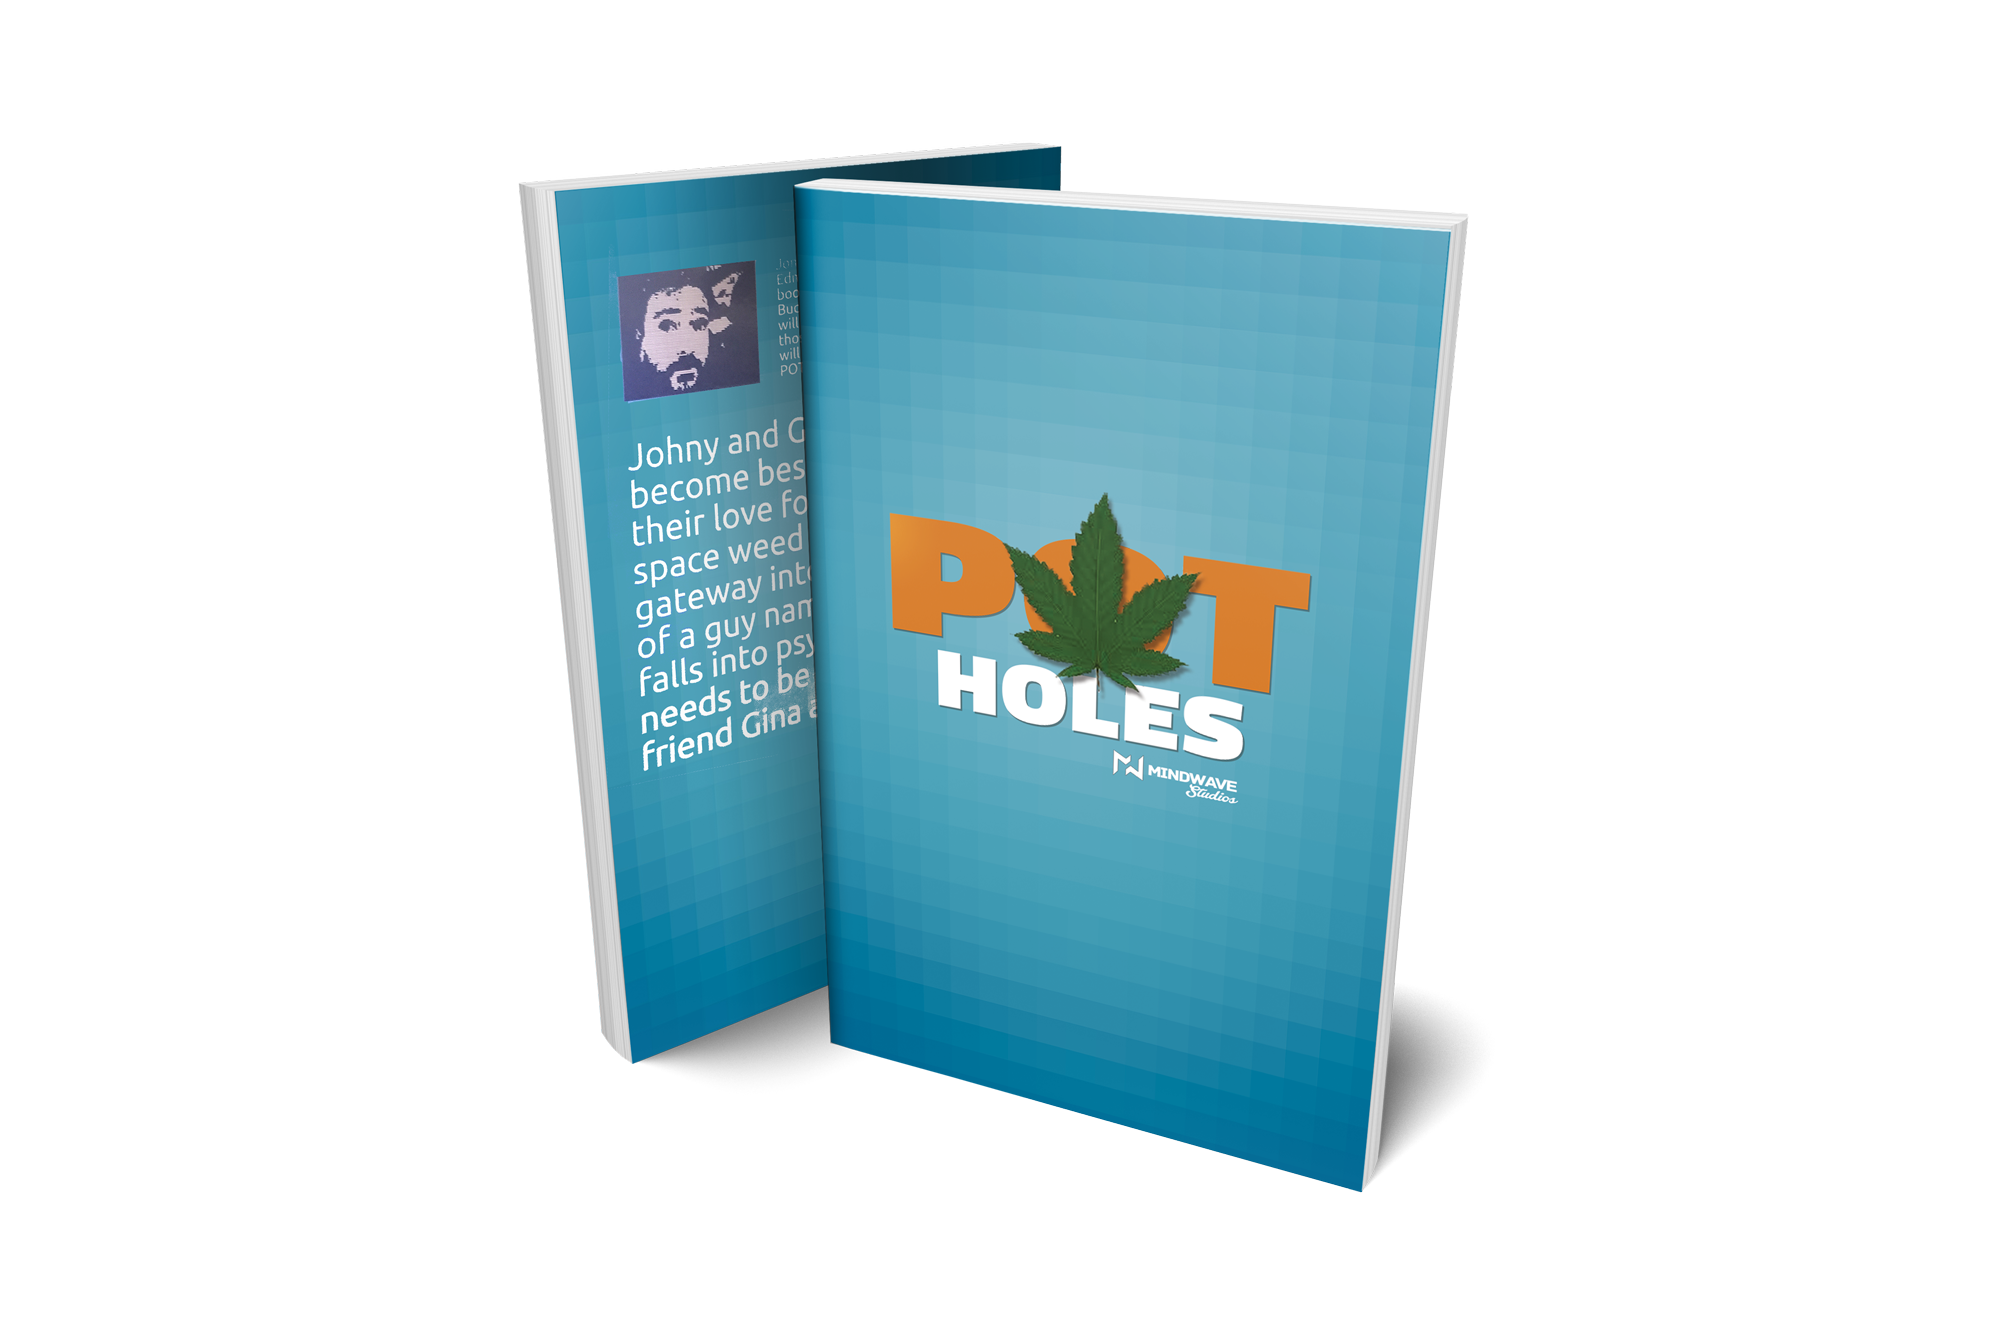 PotHoles book you can buy on Amazon if you click on the image.